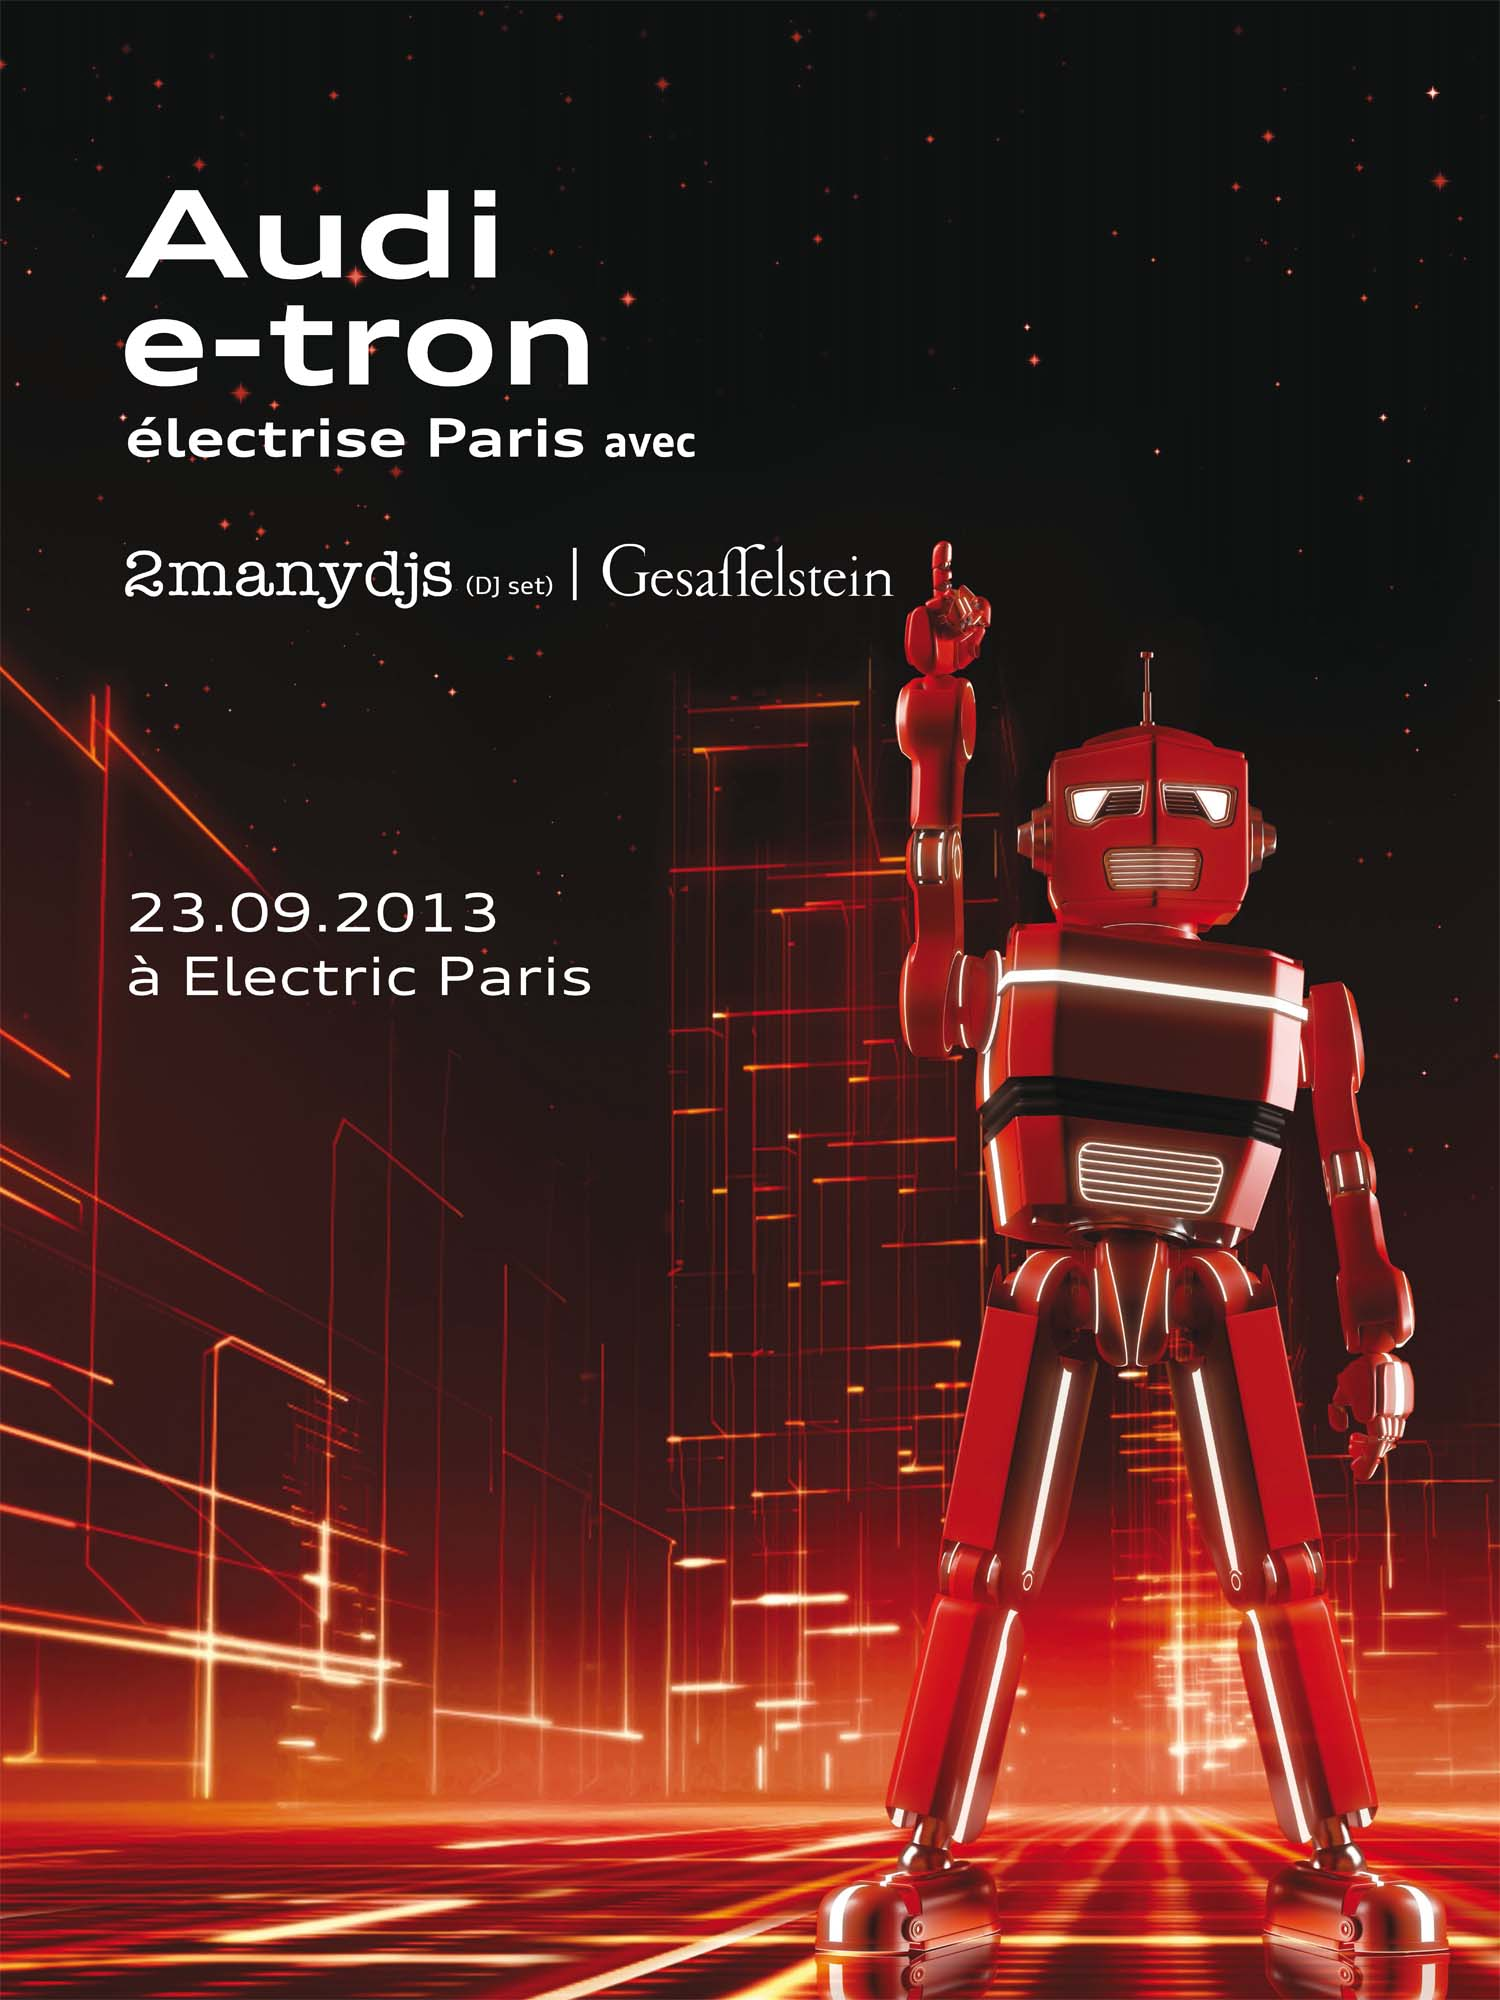 Audi e-tron à Electric Paris